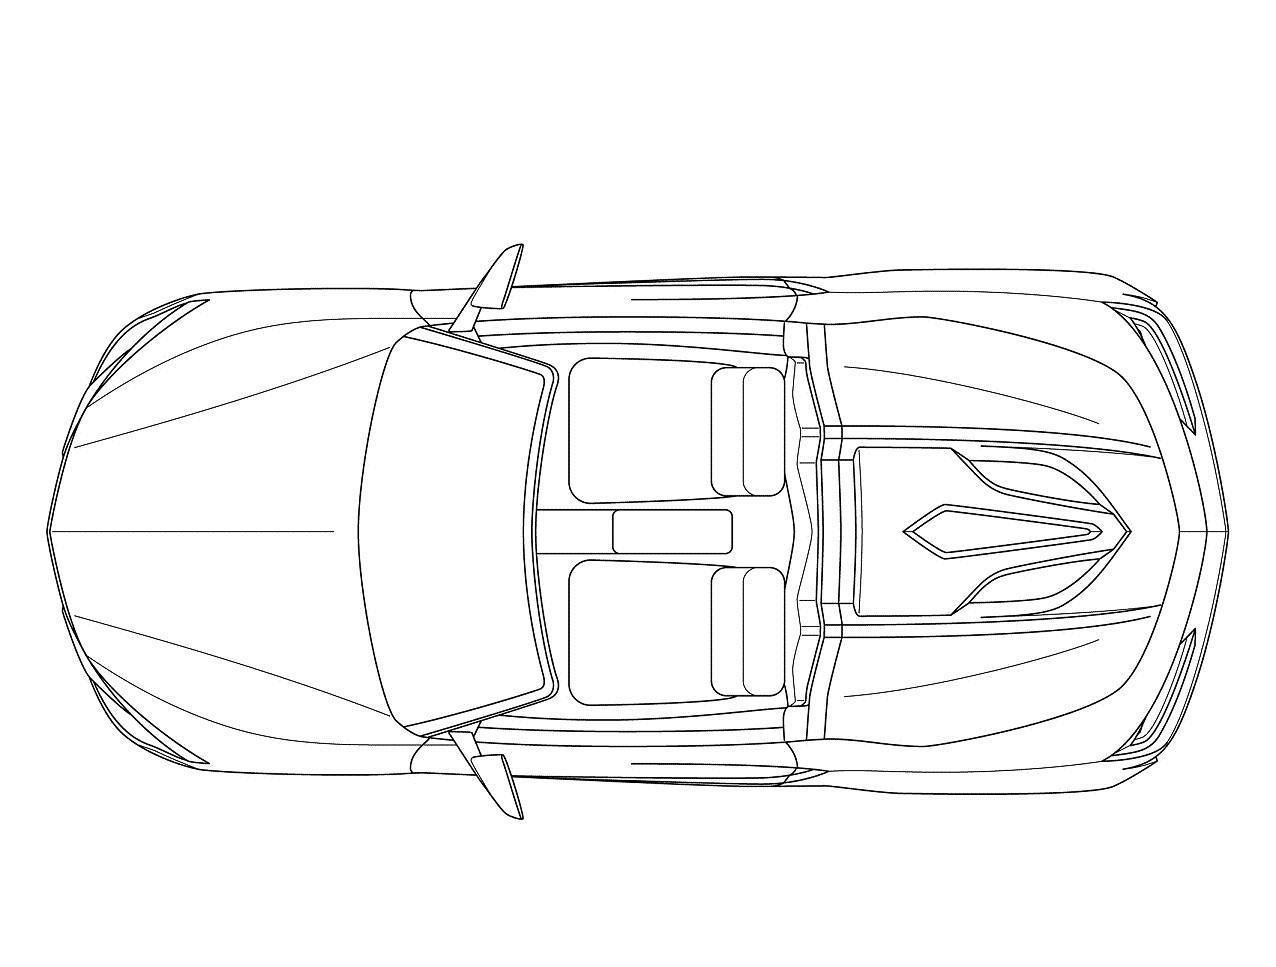 Car Top View Drawing At Getdrawings